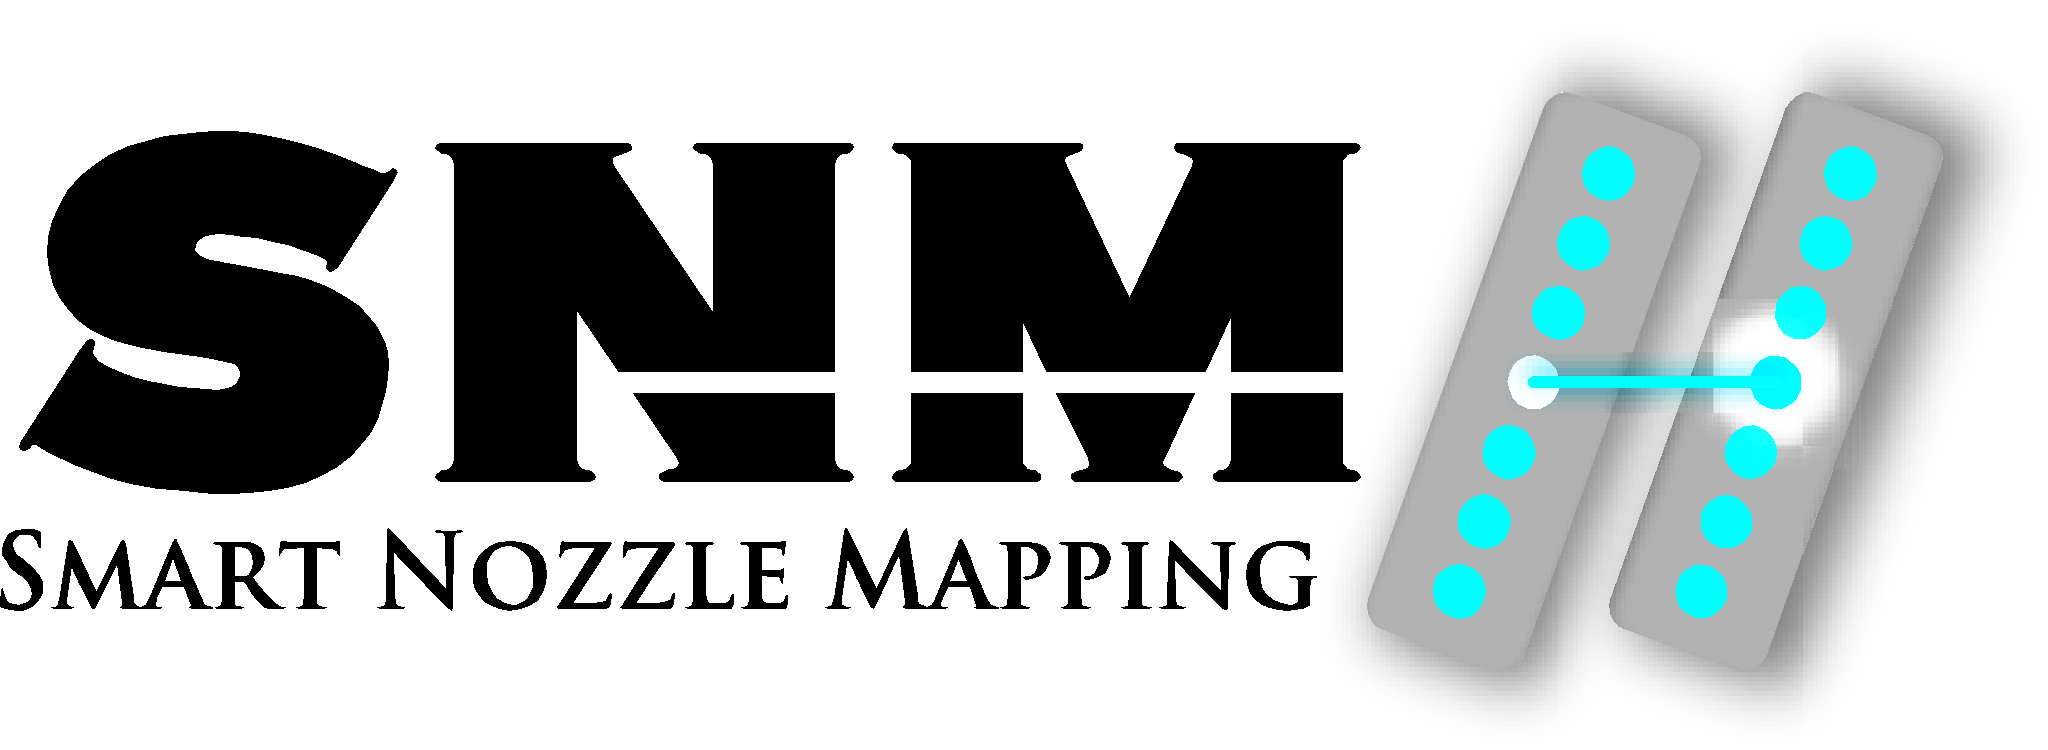 Smart Nozzle Mapping